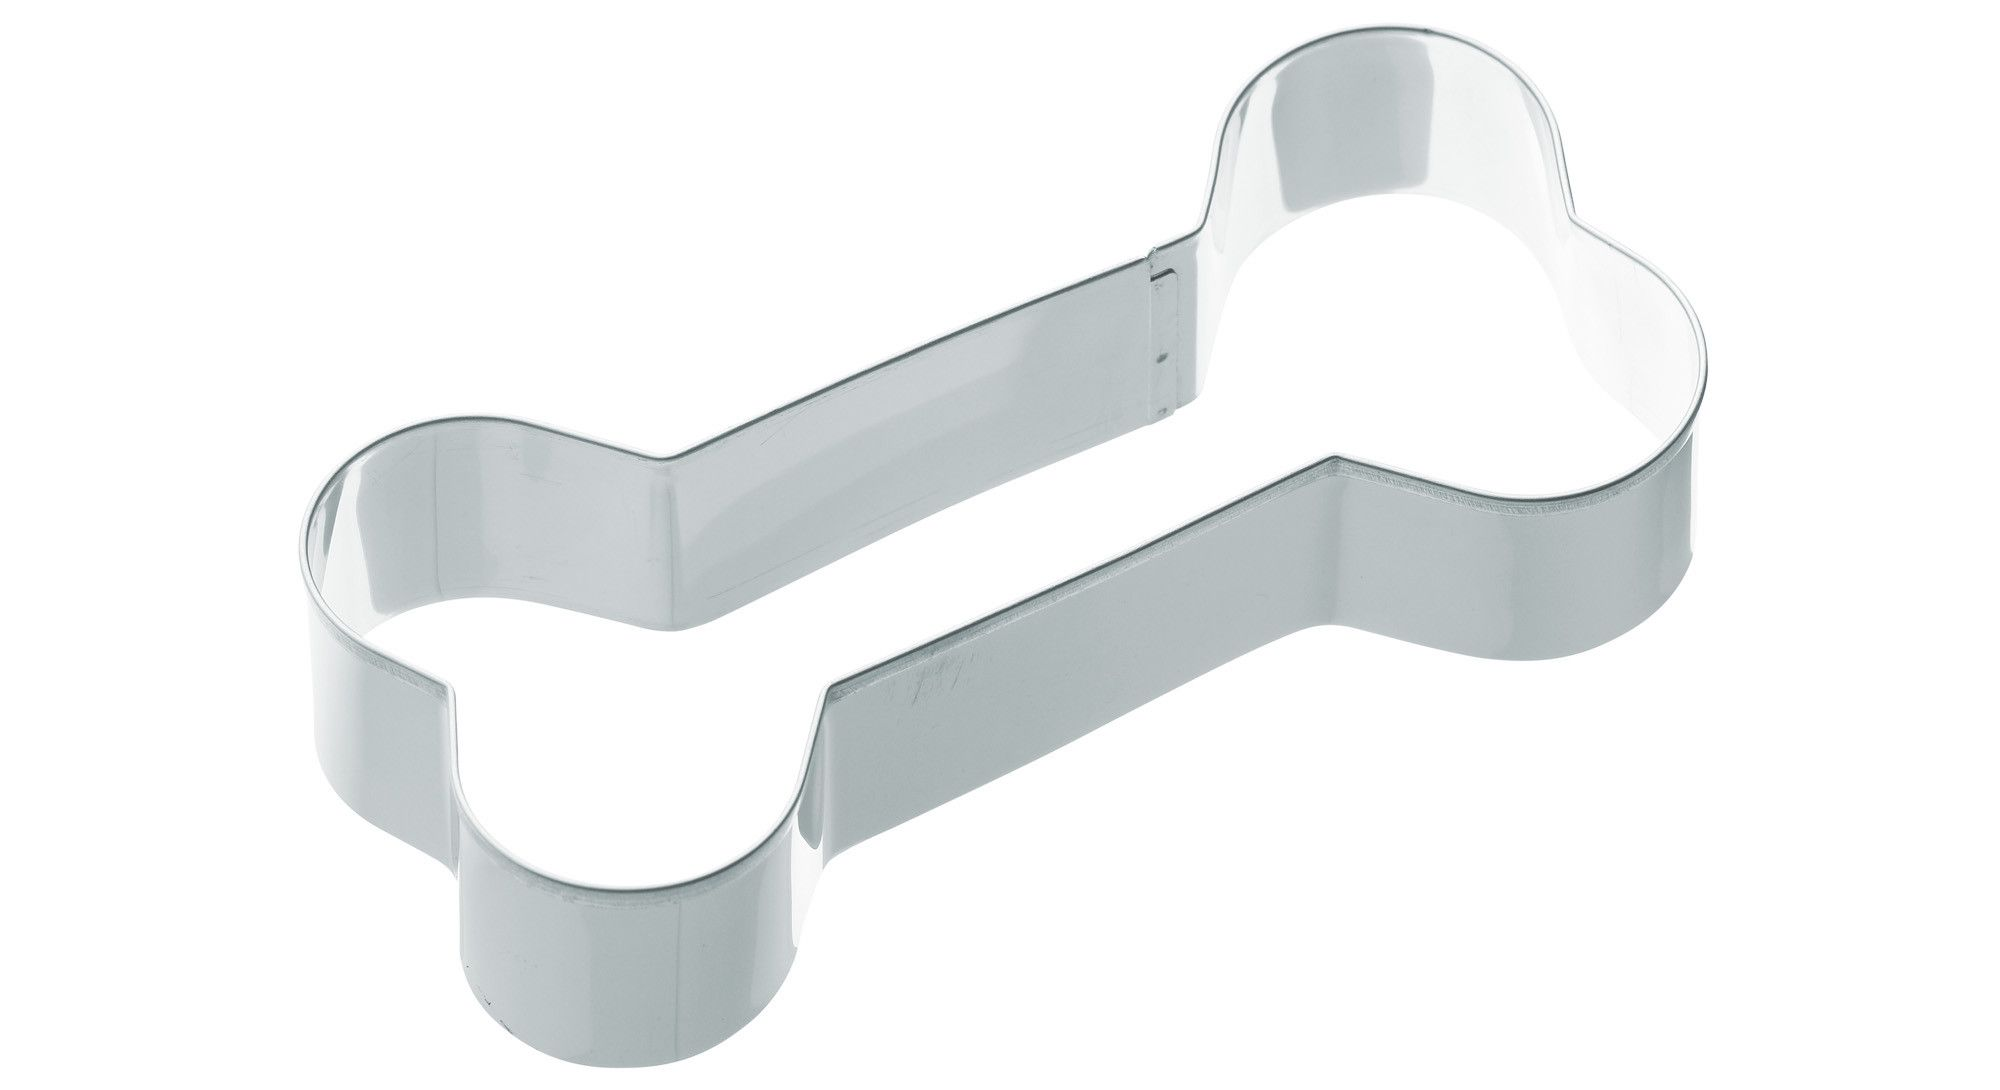 KitchenCraft Cookie Cutter in Extra Large Bone Shaped (Set of 12)